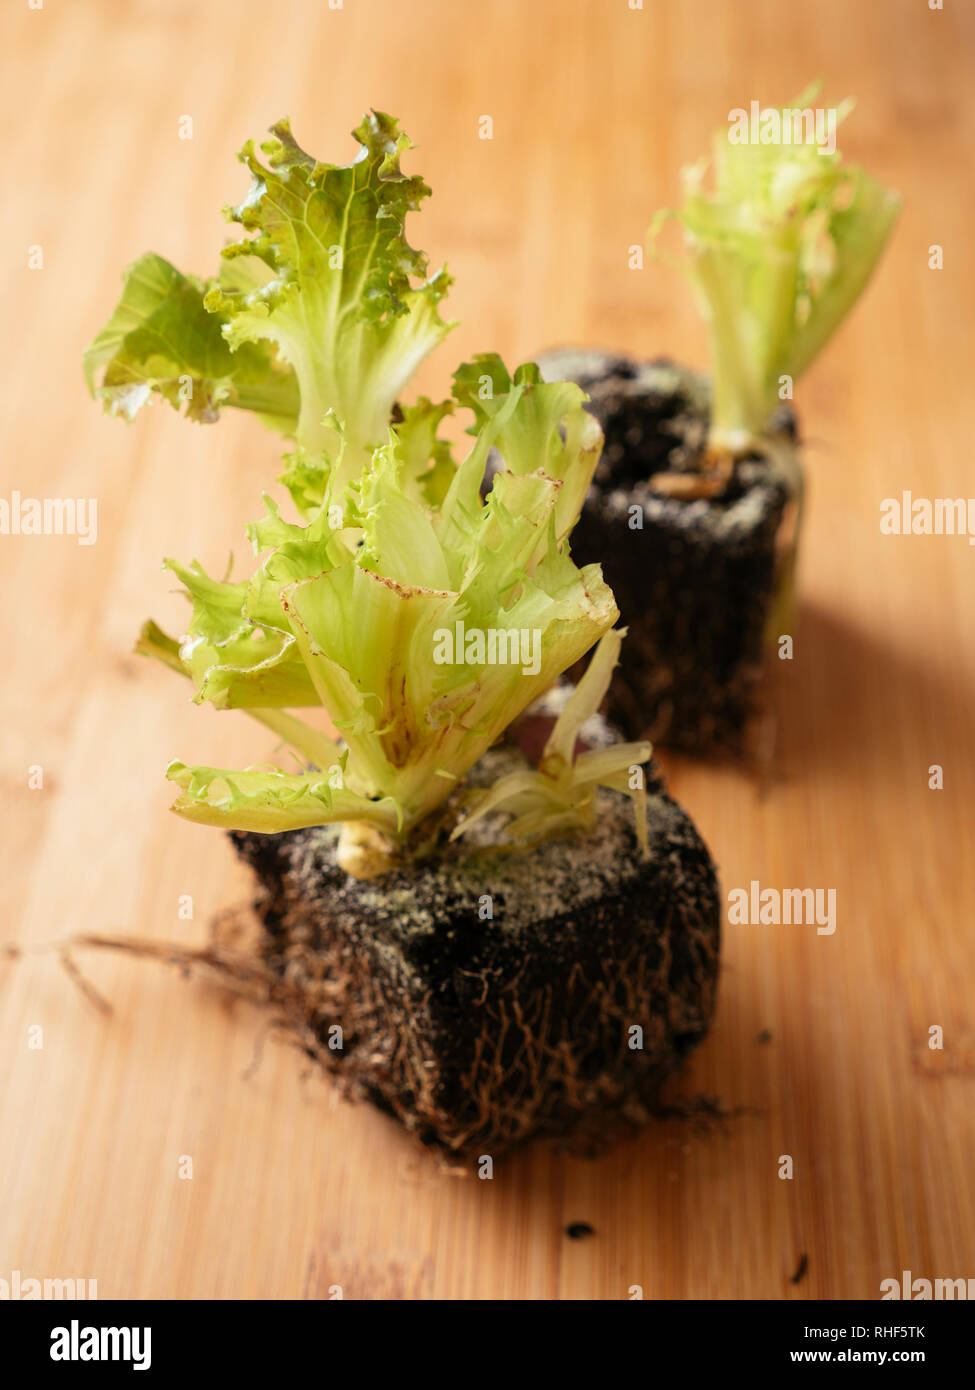 Lettuce scraps with roots Stock Photo